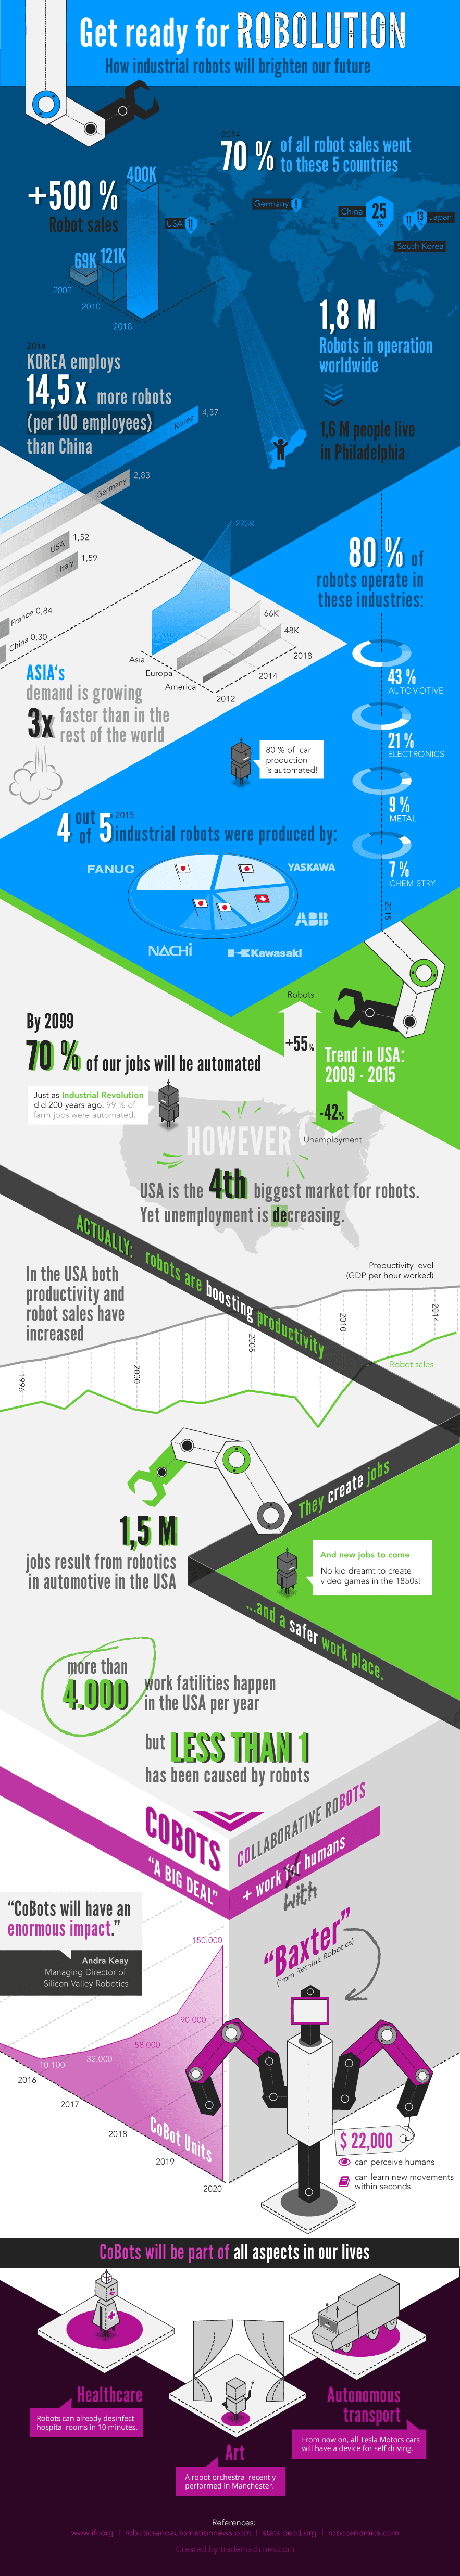 How Industrial Robots Will Brighten Our Future #infographic